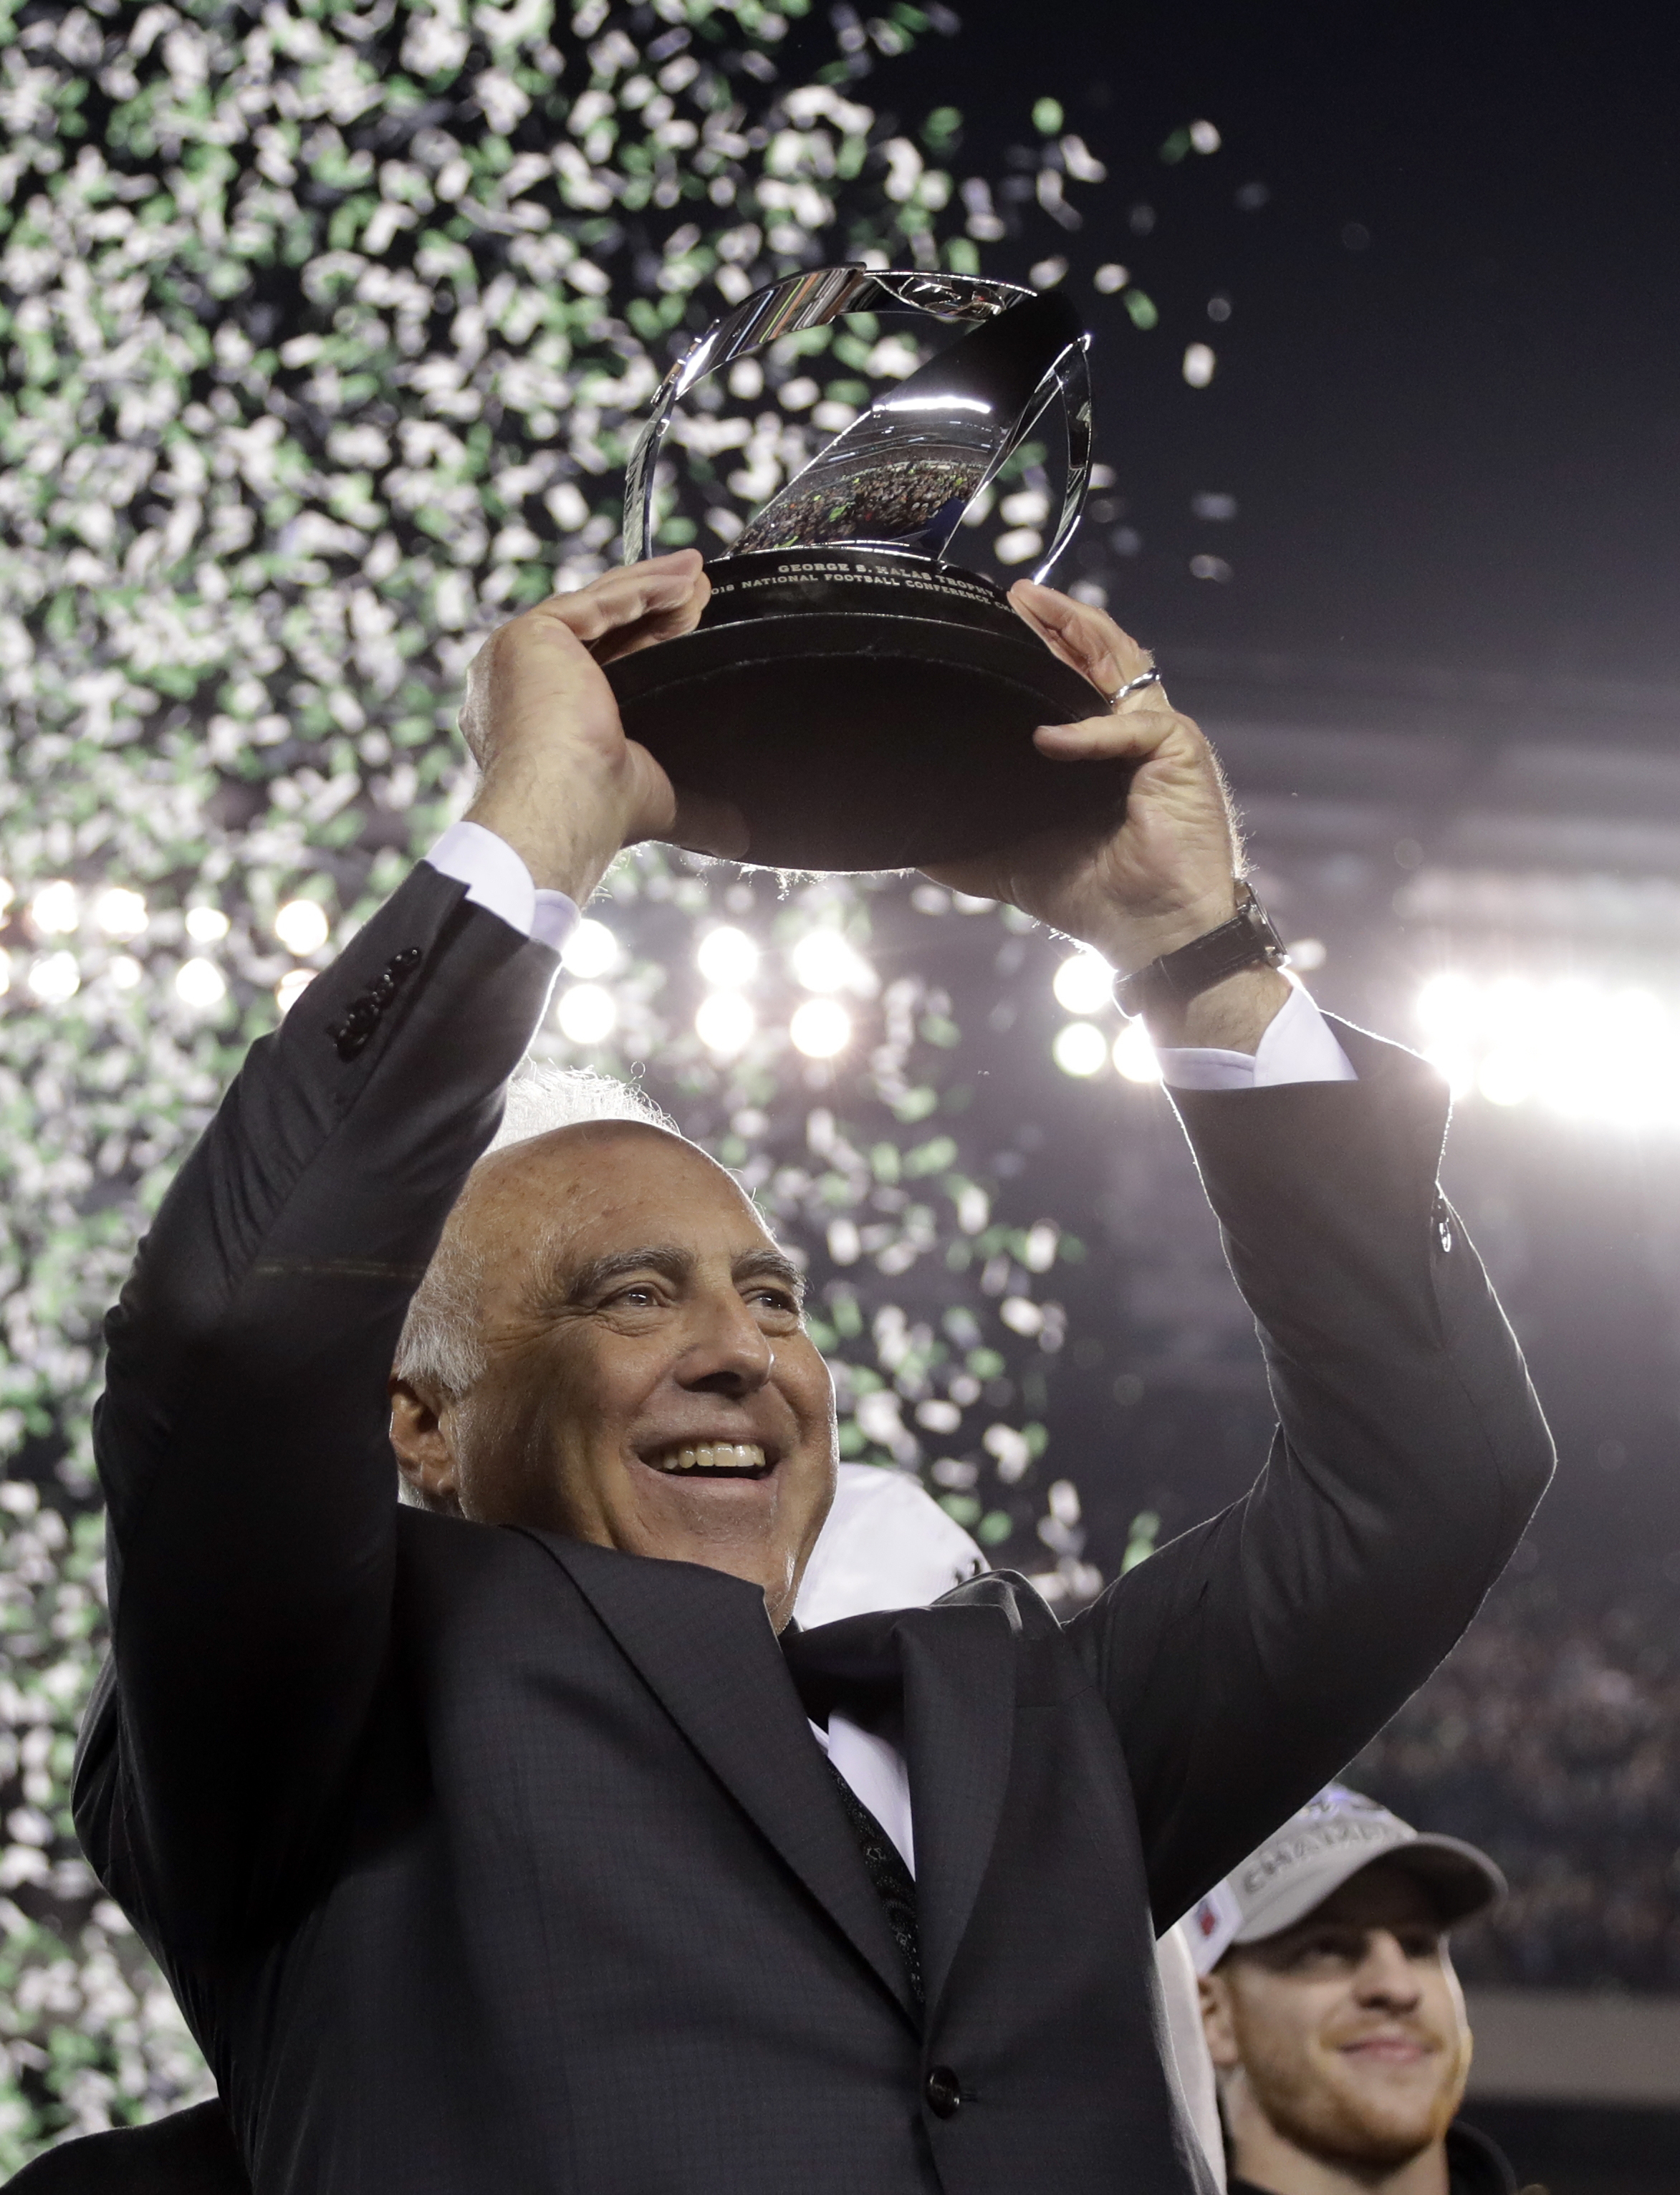 "<div class=""meta image-caption""><div class=""origin-logo origin-image ap""><span>AP</span></div><span class=""caption-text"">Philadelphia Eagles owner Jeffrey Lurie celebrates after the NFL football NFC championship game against the Minnesota Vikings Sunday, Jan. 21, 2018, in Philadelphia. (AP Photo/Matt Slocum)</span></div>"